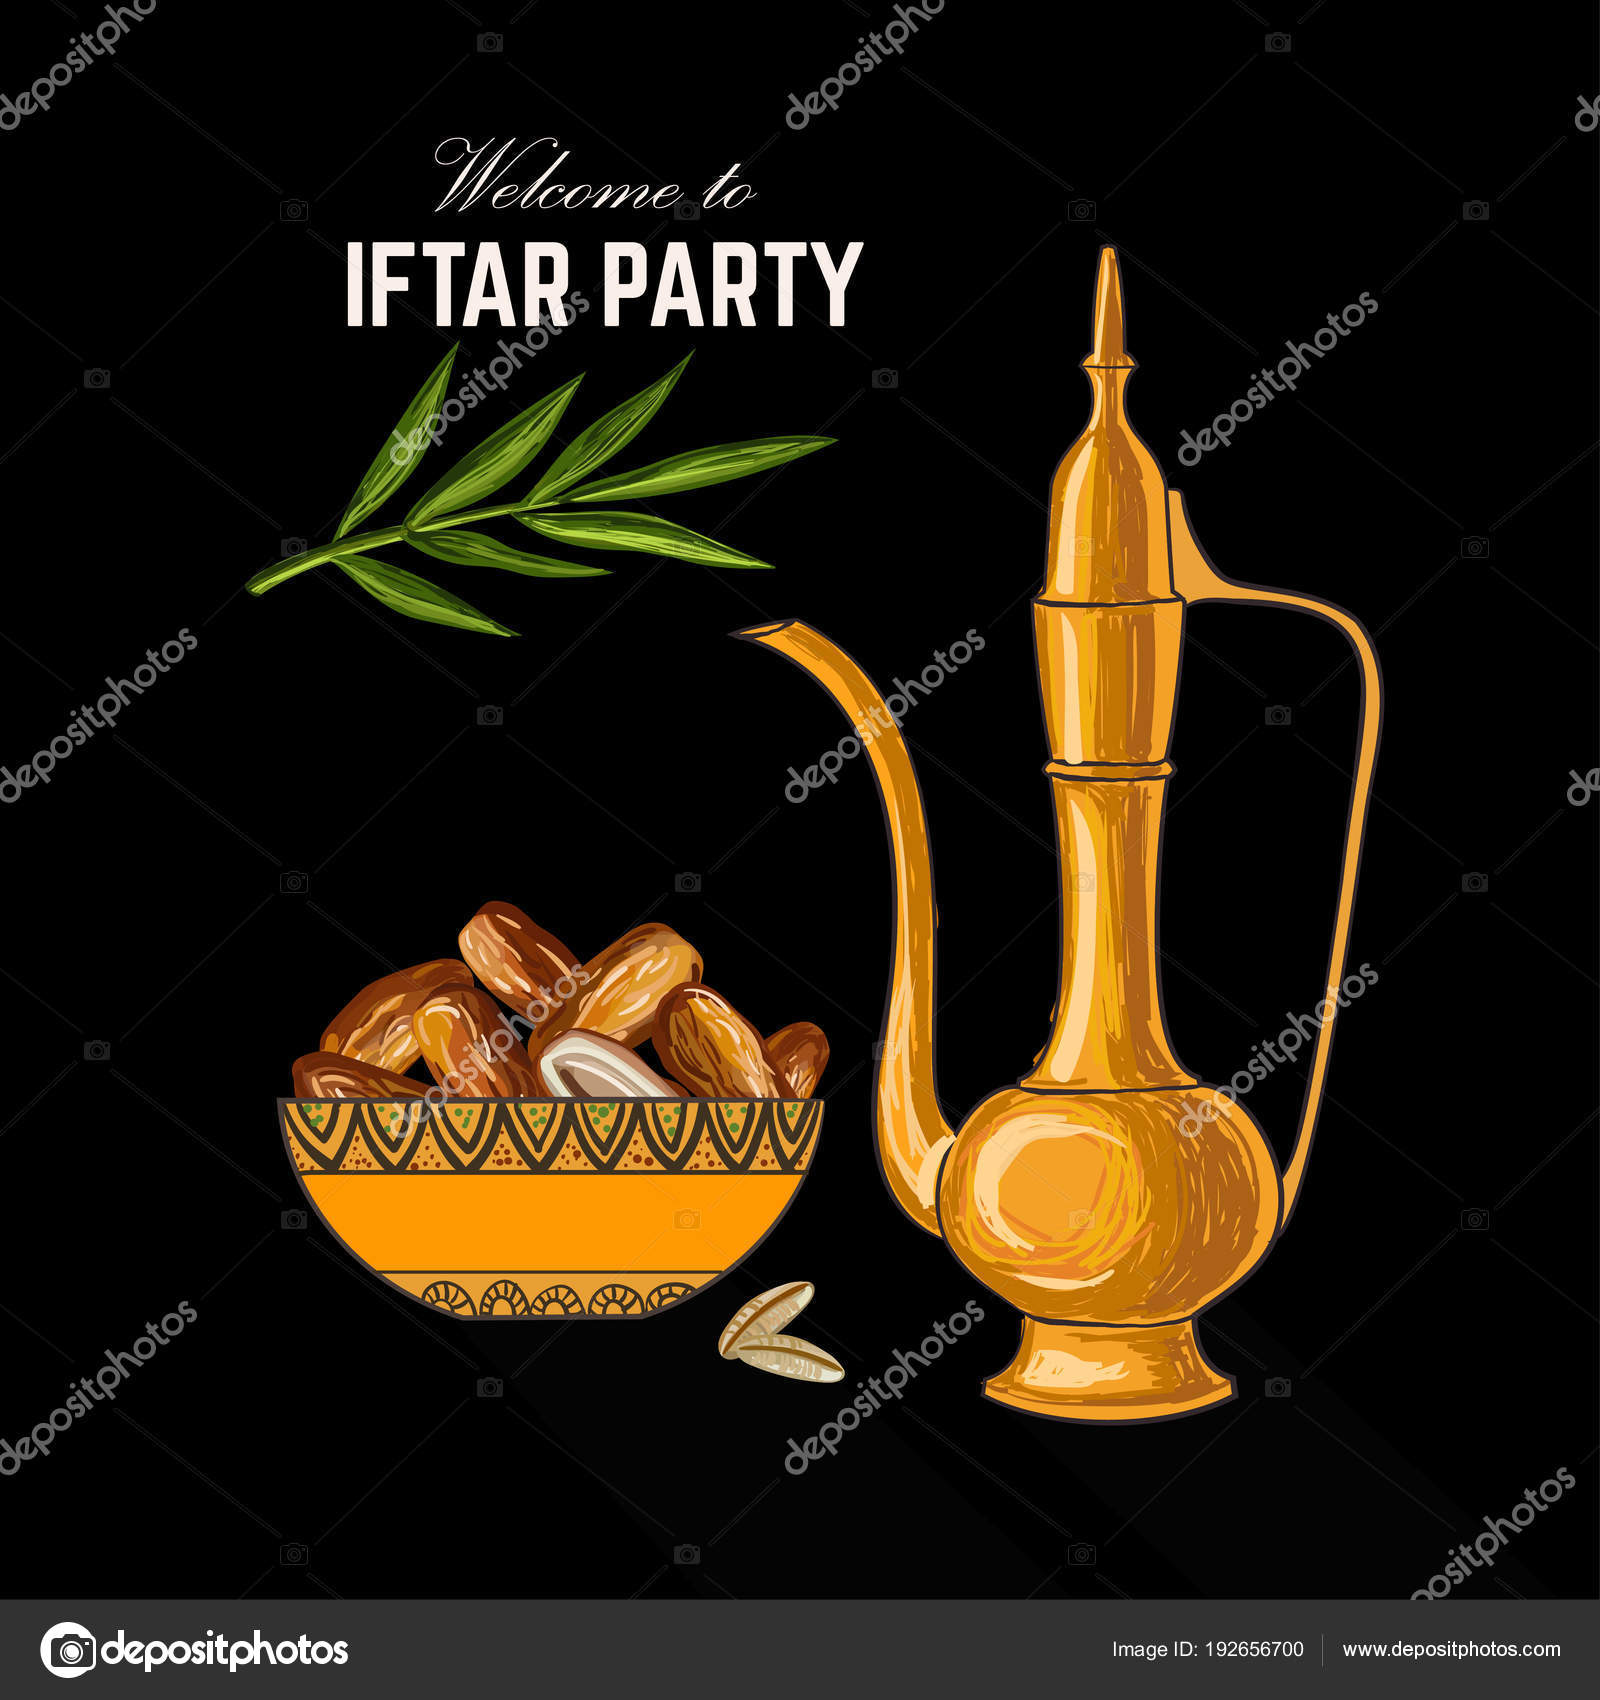 Ramadan kareem iftar invitation card stock vector amishka1 ramadan kareem iftar invitation card stock vector stopboris Gallery